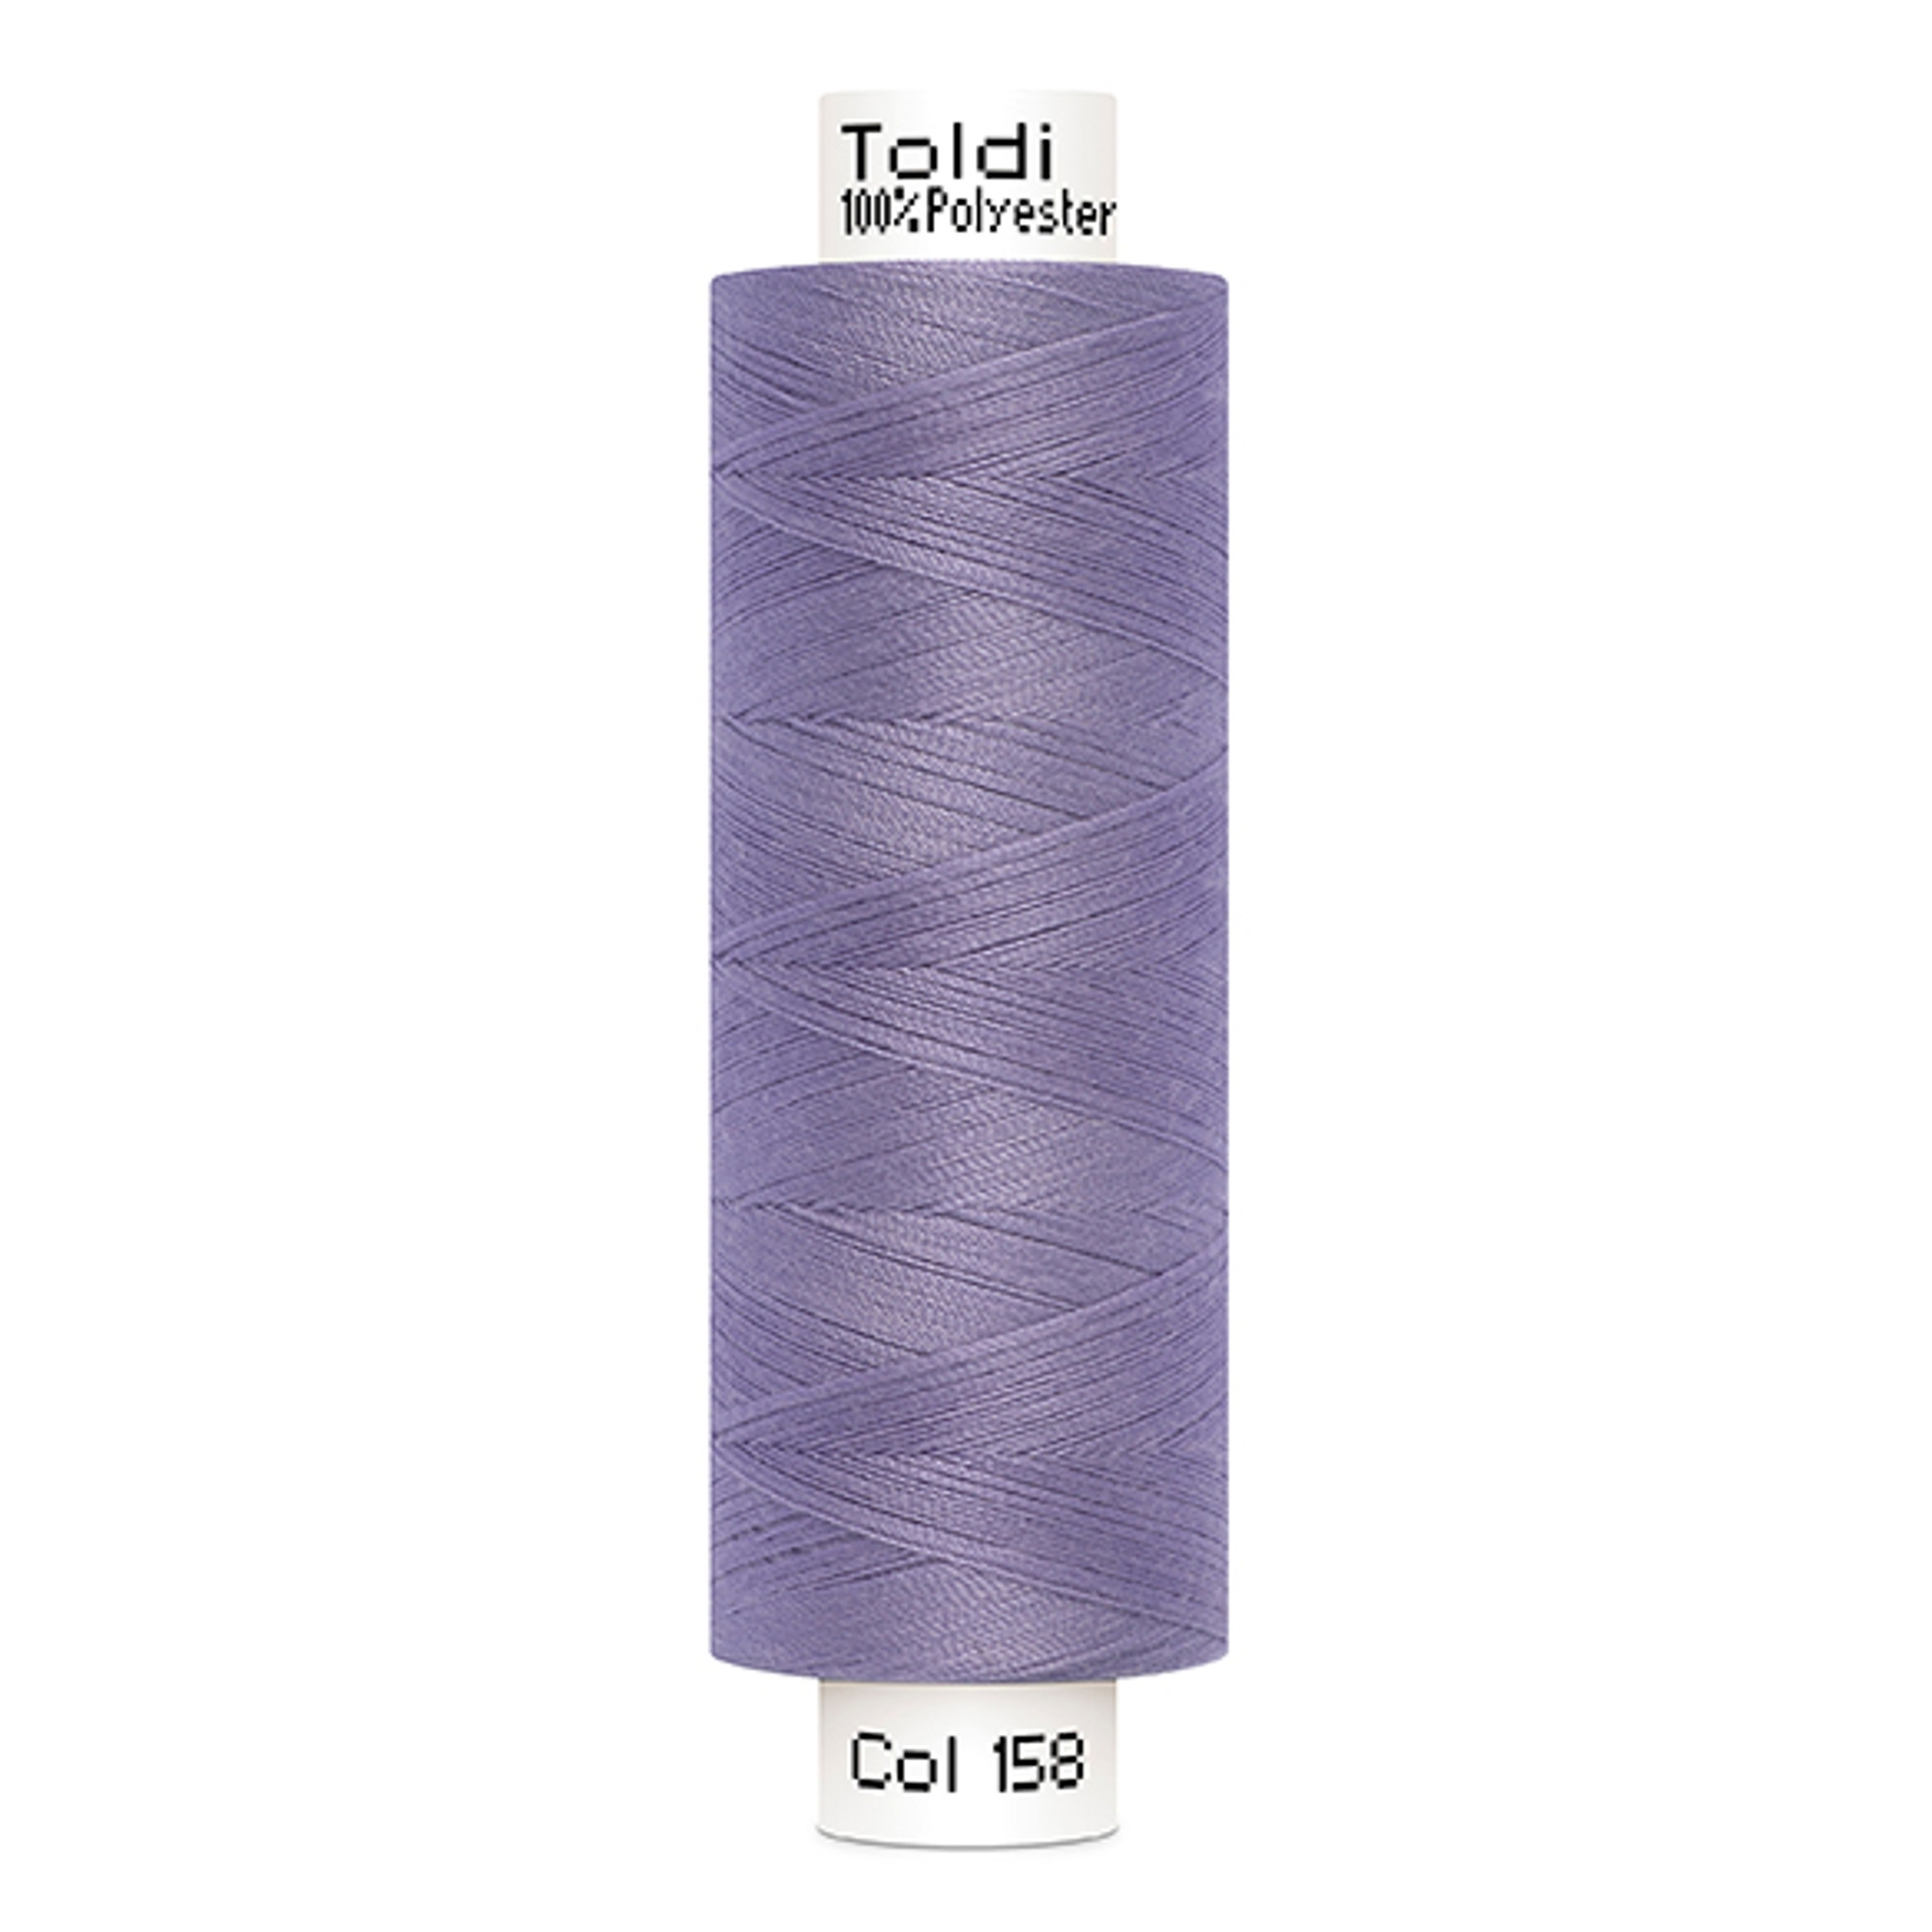 Gütermann Toldi Sewing Thread, 500 m lilac | 707589-158 |